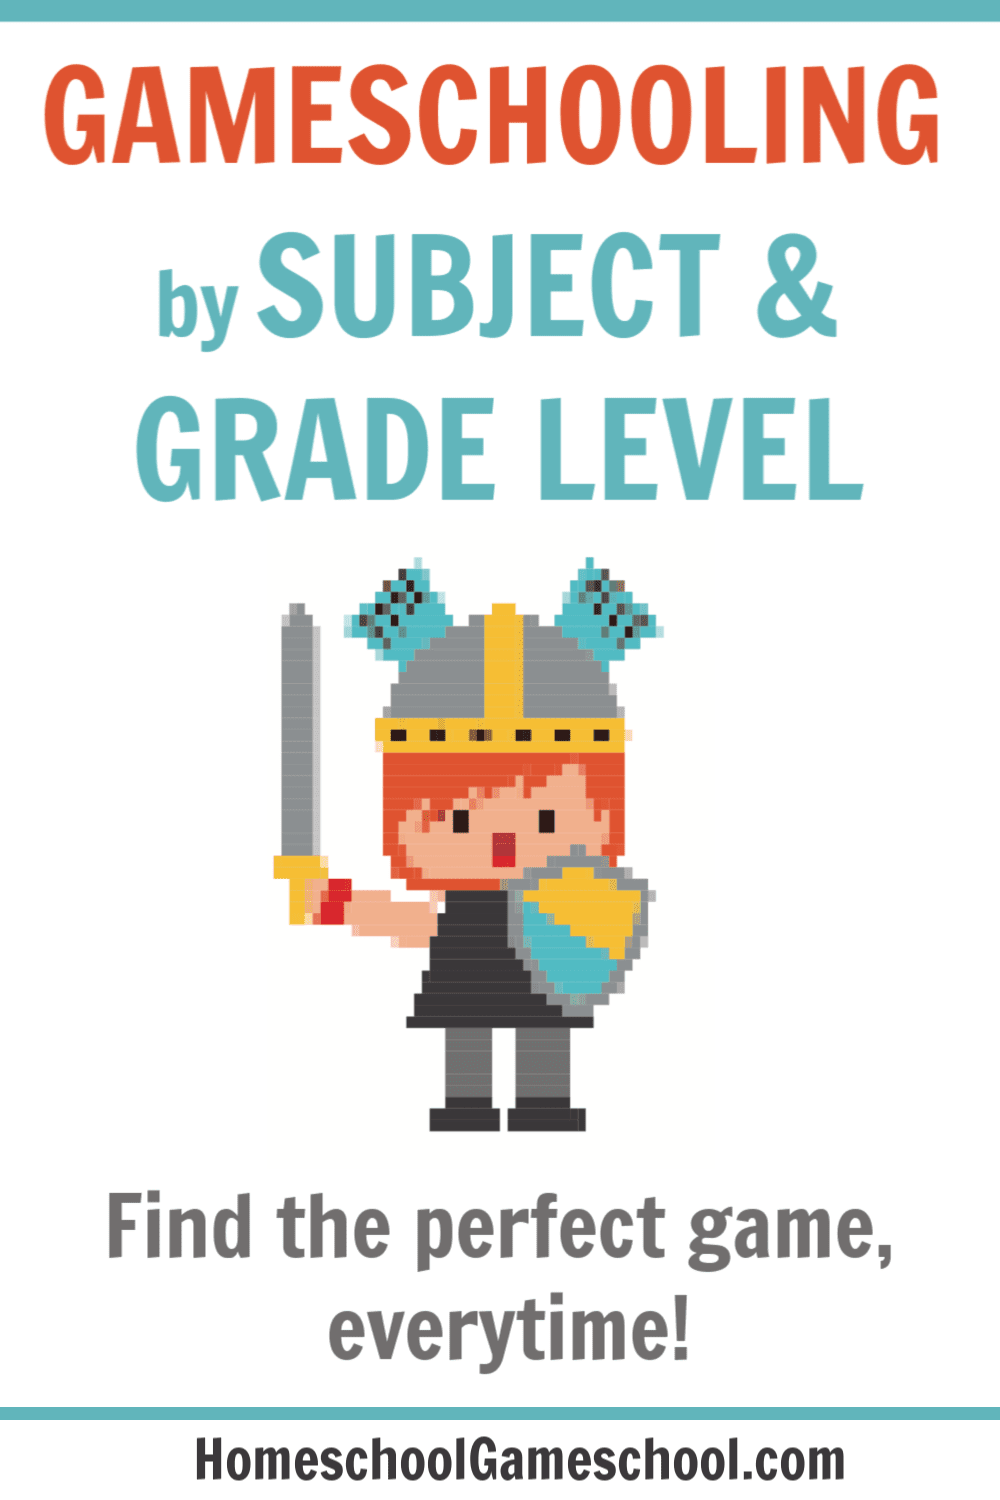 Gameschooling by subject and age